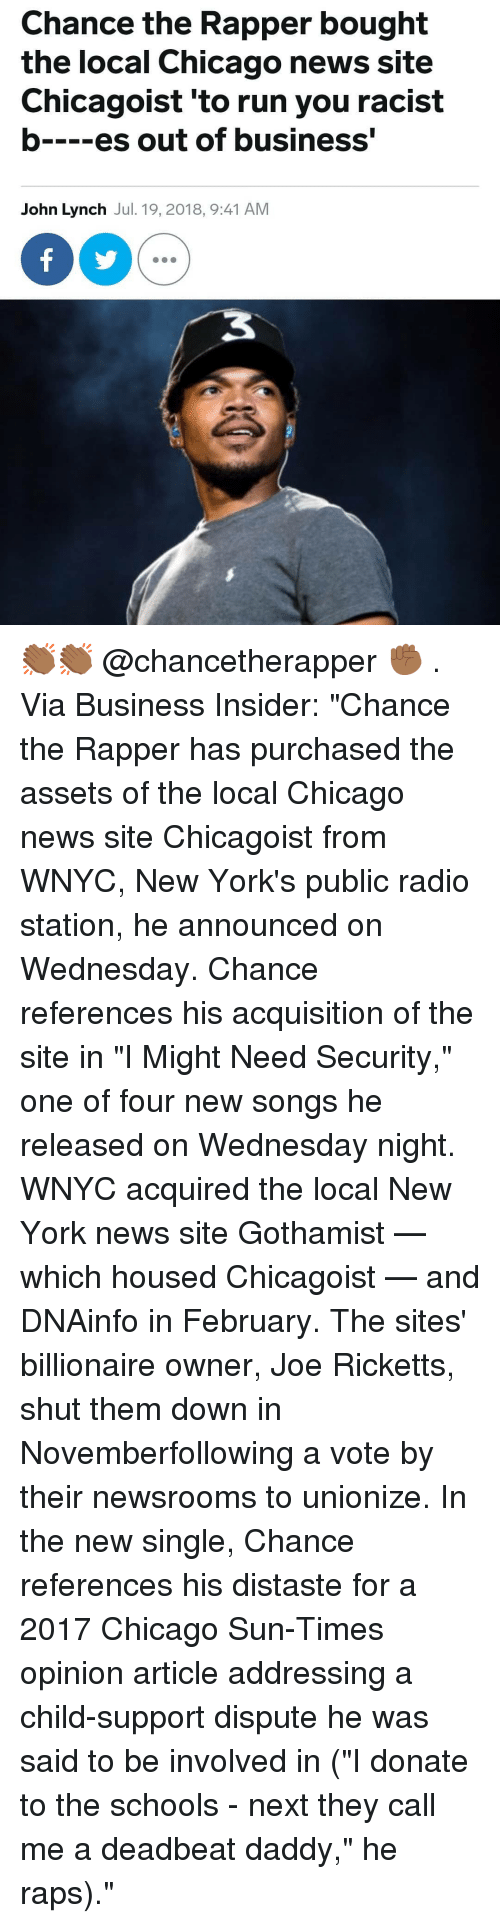 "raps: Chance the Rapper bought  the local Chicago news site  Chicagoist 'to run you racist  b es out of business'  John Lynch Jul. 19, 2018, 9:41 AM 👏🏾👏🏾 @chancetherapper ✊🏾 . Via Business Insider: ""Chance the Rapper has purchased the assets of the local Chicago news site Chicagoist from WNYC, New York's public radio station, he announced on Wednesday. Chance references his acquisition of the site in ""I Might Need Security,"" one of four new songs he released on Wednesday night. WNYC acquired the local New York news site Gothamist — which housed Chicagoist — and DNAinfo in February. The sites' billionaire owner, Joe Ricketts, shut them down in Novemberfollowing a vote by their newsrooms to unionize. In the new single, Chance references his distaste for a 2017 Chicago Sun-Times opinion article addressing a child-support dispute he was said to be involved in (""I donate to the schools - next they call me a deadbeat daddy,"" he raps)."""